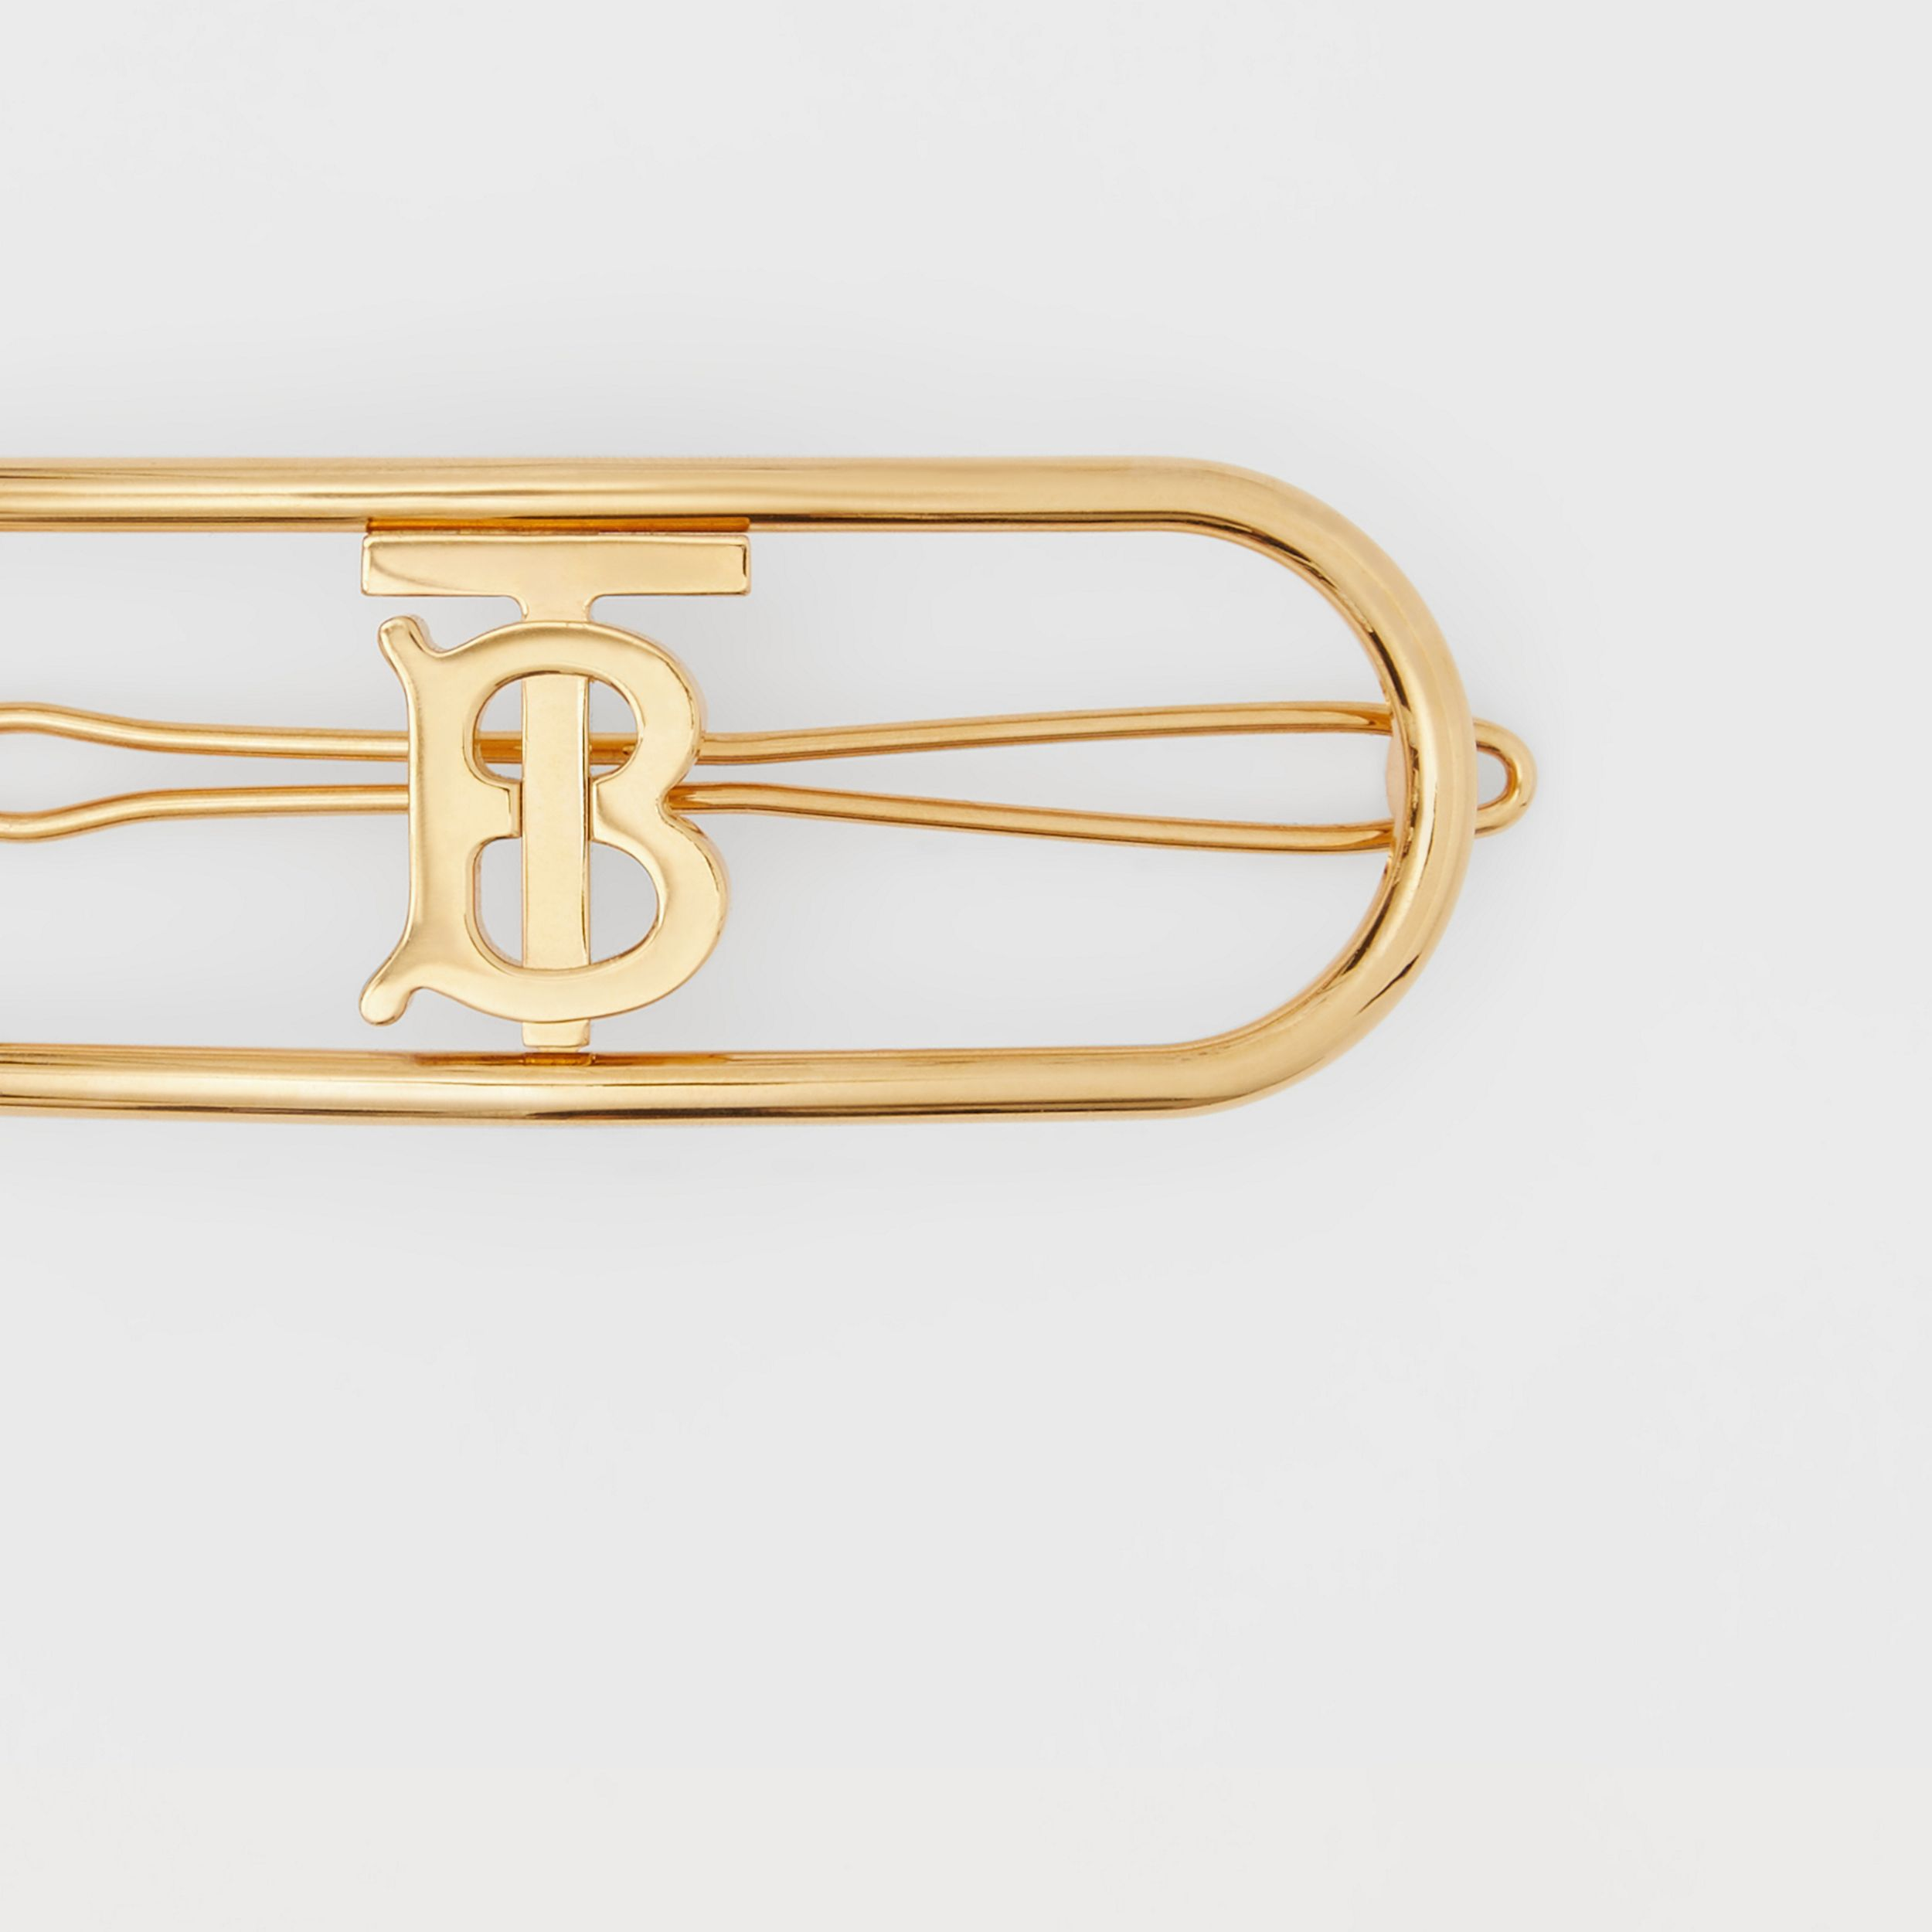 Gold-plated Monogram Motif Hair Clip in Light - Women | Burberry - 2